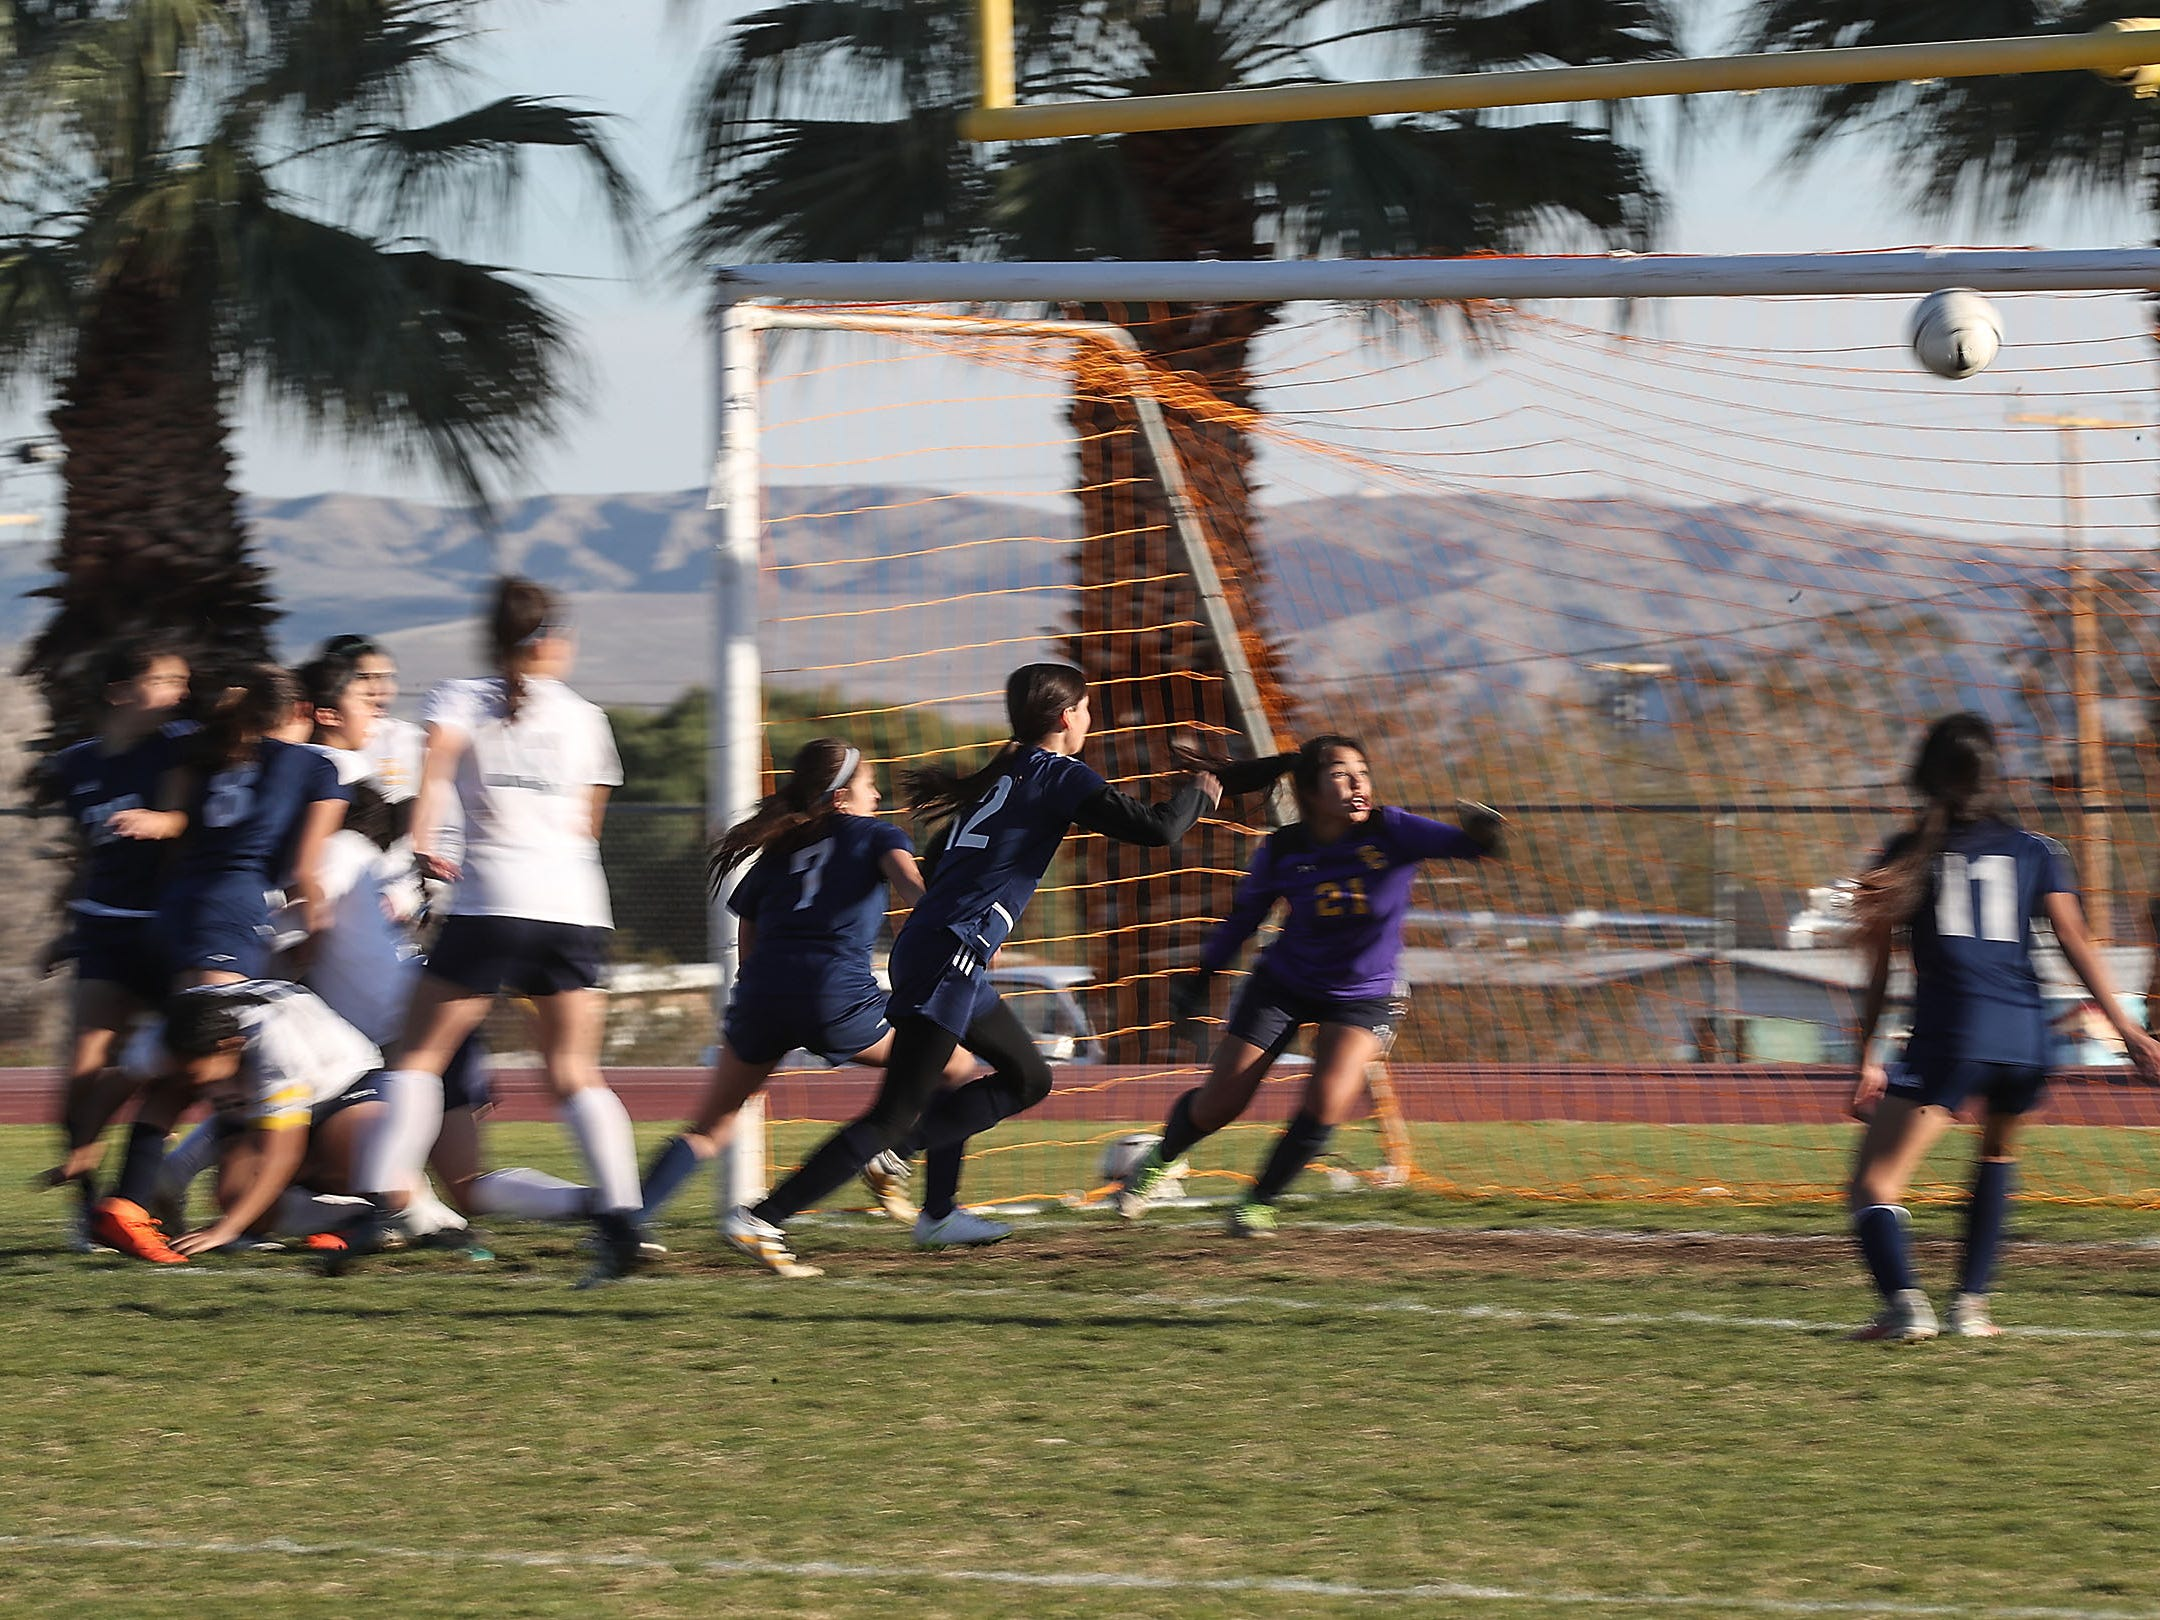 Desert Hot Springs scores on a corner kick against Santa Clara during their match, February 8, 2019.